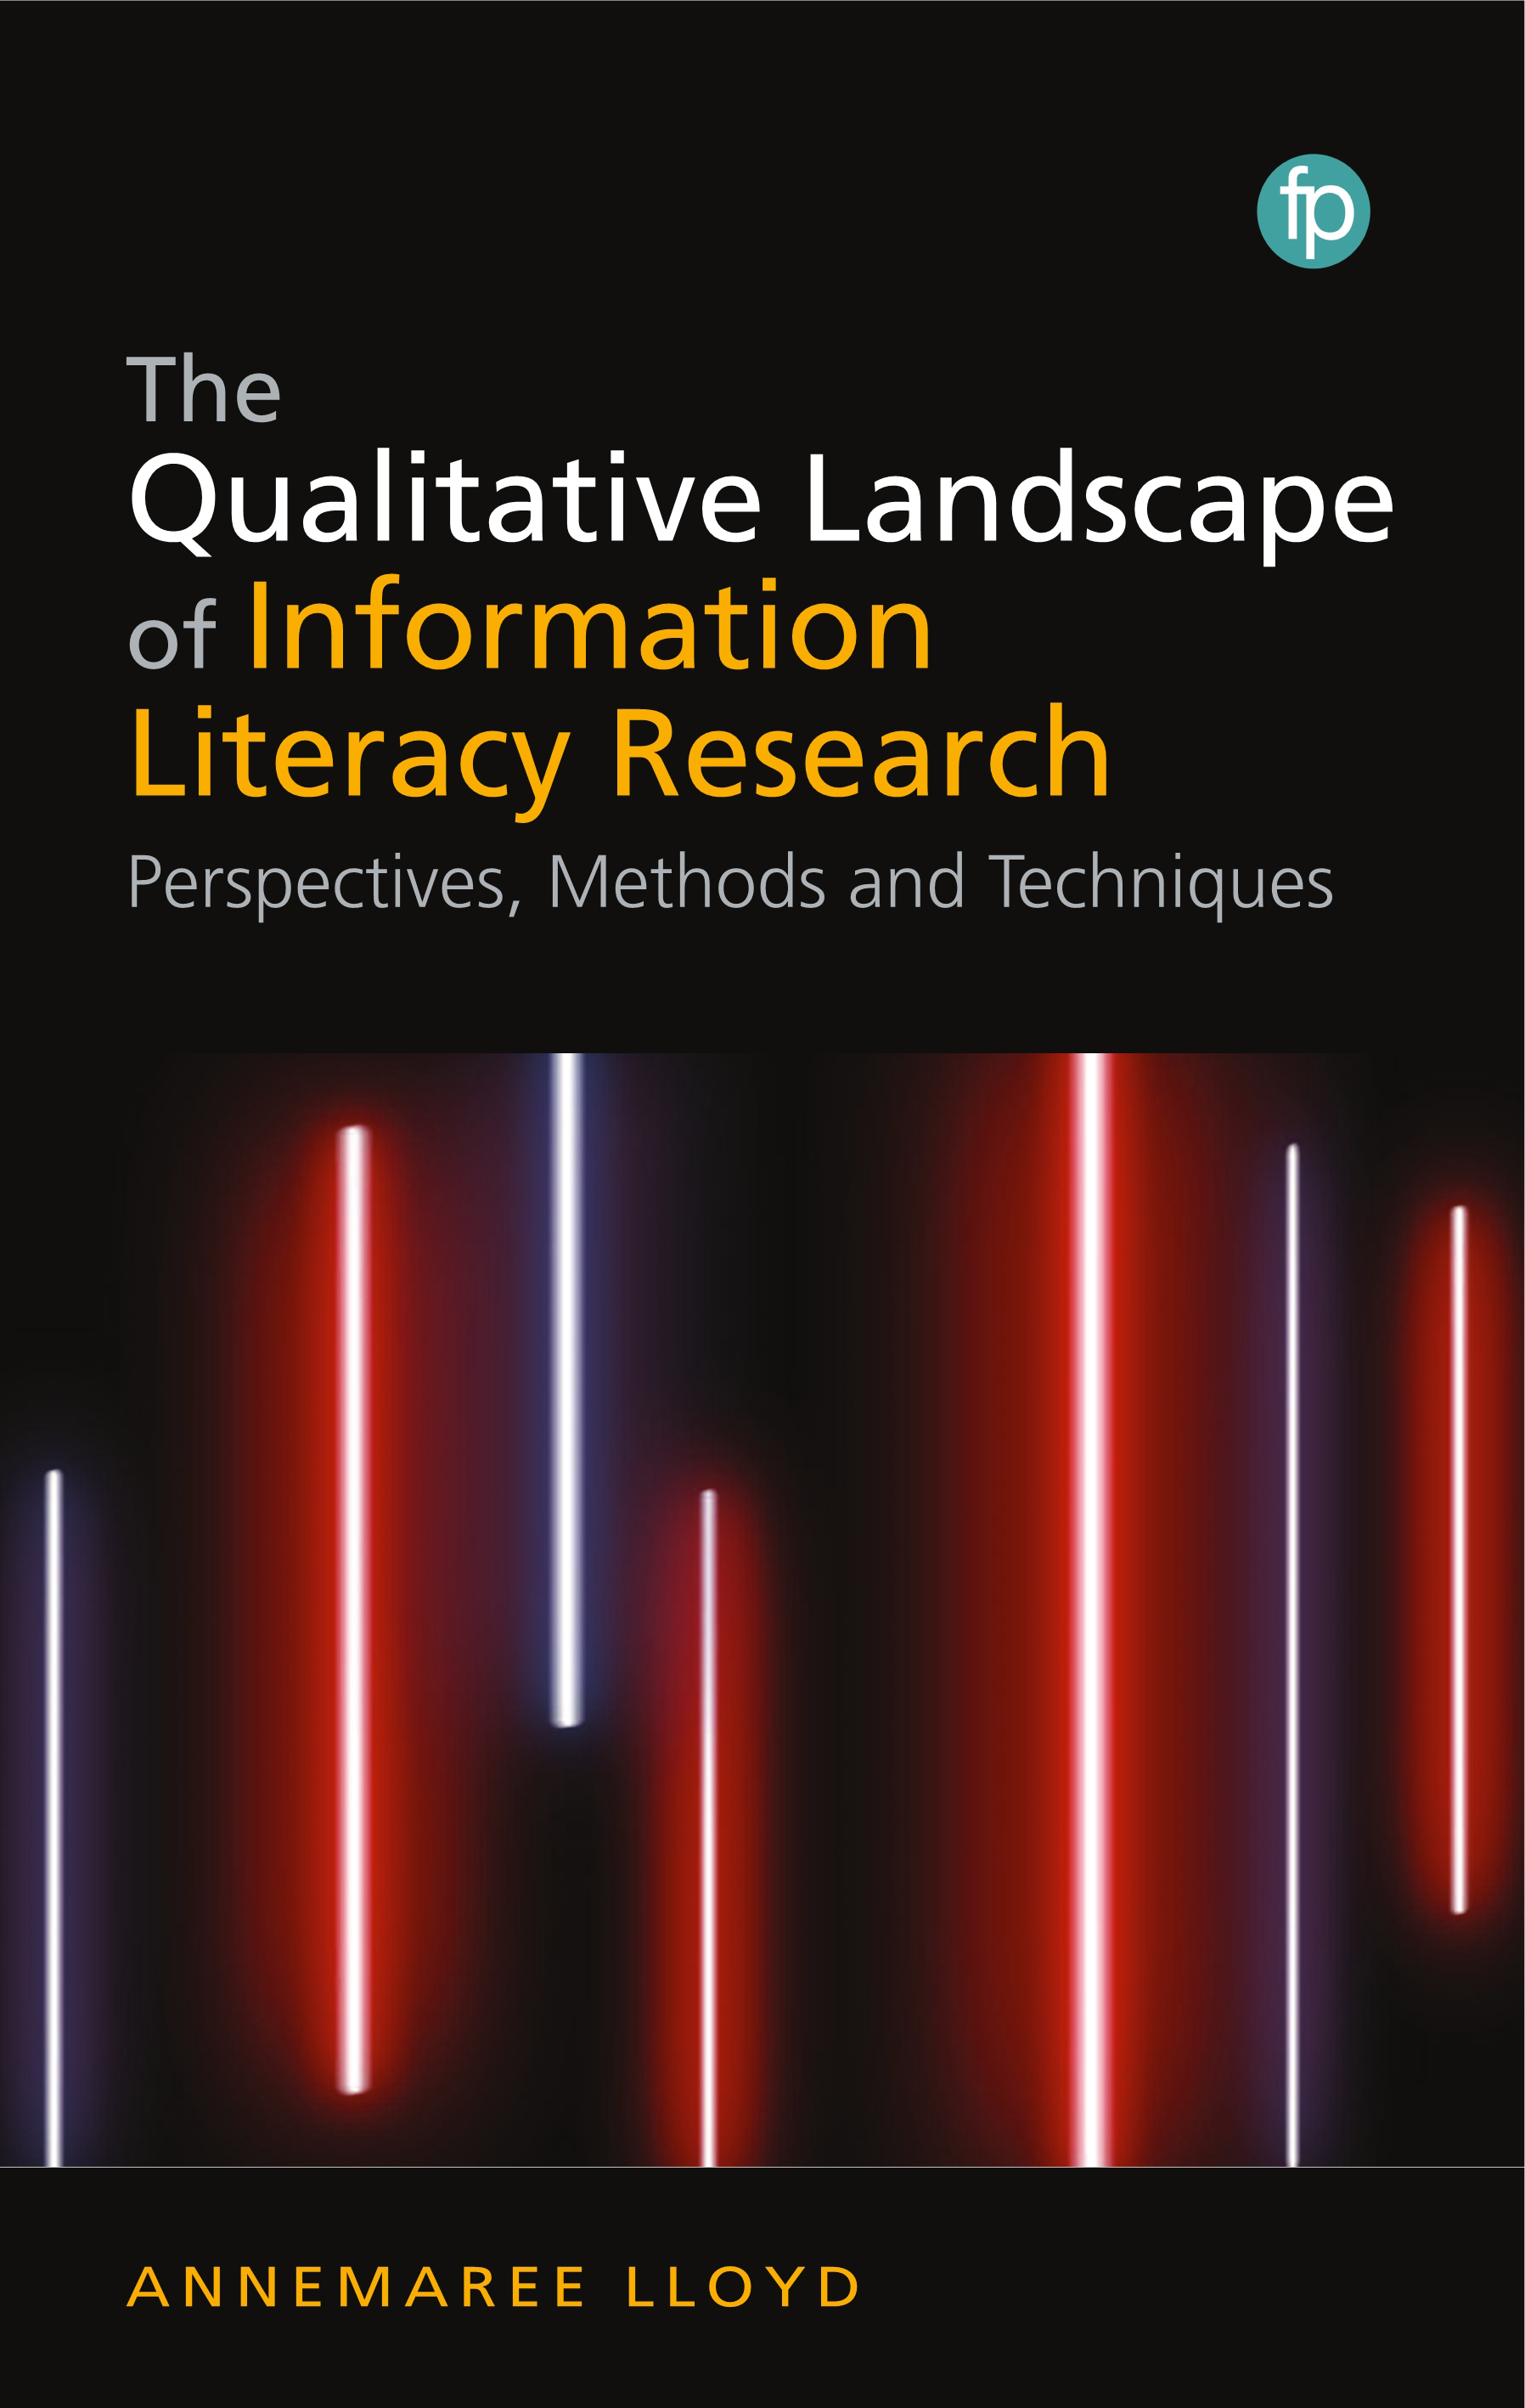 Image for The Qualitative Landscape of Information Literacy Research: Perspectives, Methods and Techniques